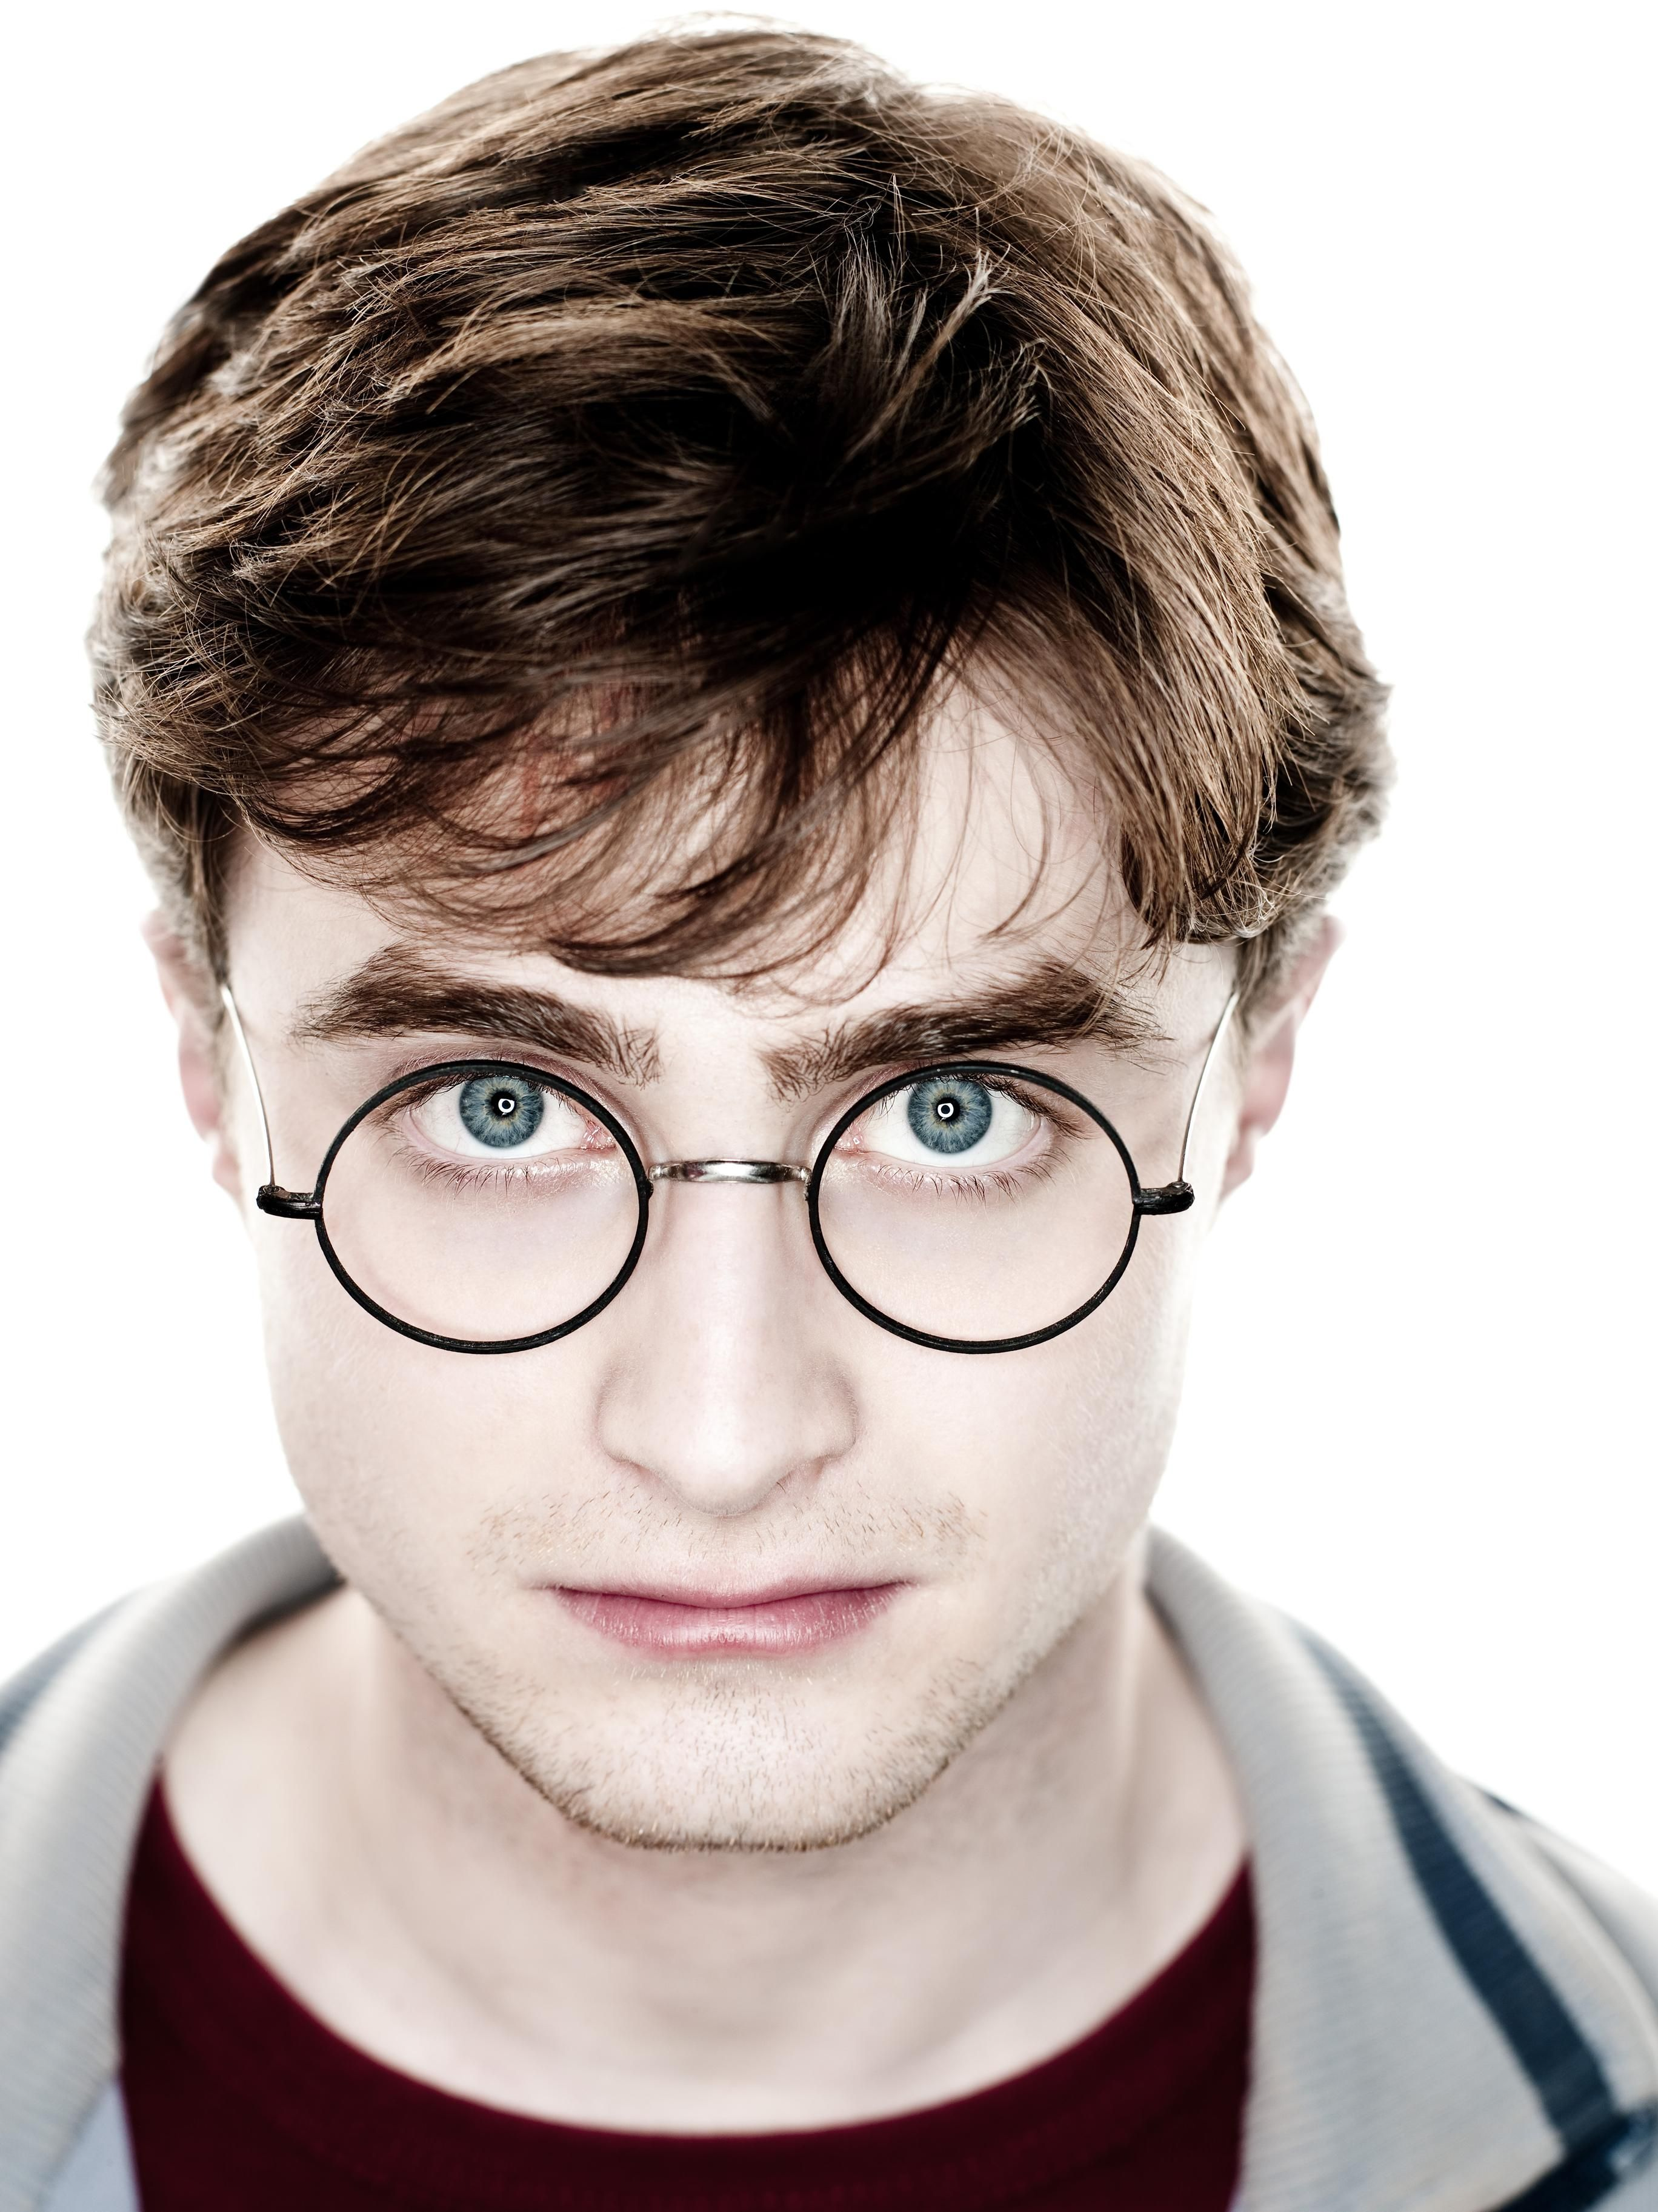 DHf1-Promo CloseUp HarryPotter.jpg